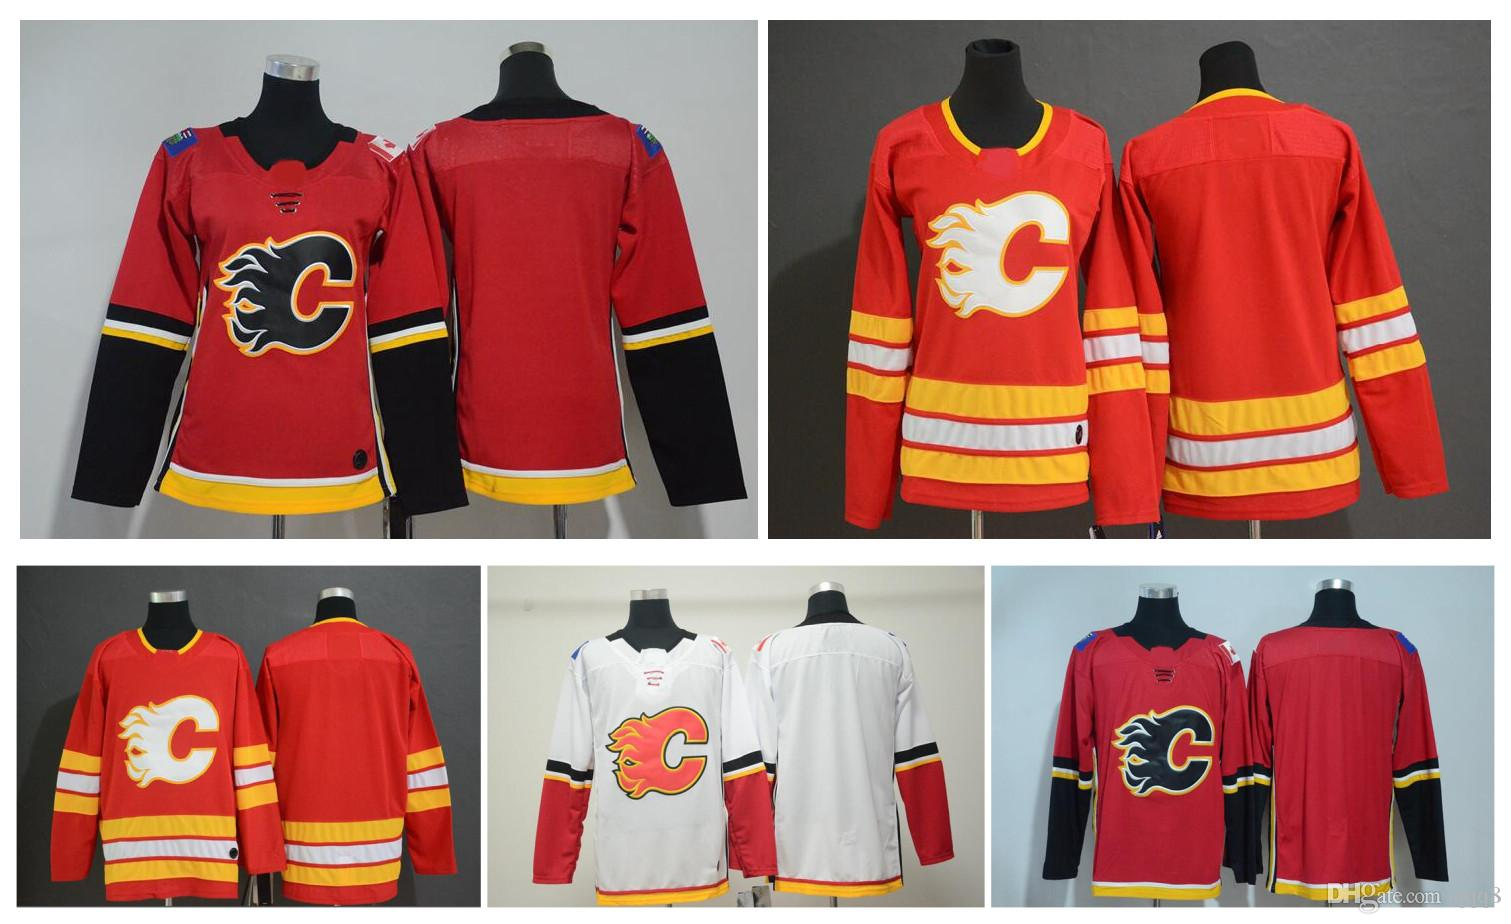 2020 2019 New Calgary Flames Jerseys Men Kids Women Blank No Name Number White Red Stitched Hockey Jersey From Qqq8 22 19 Dhgate Com